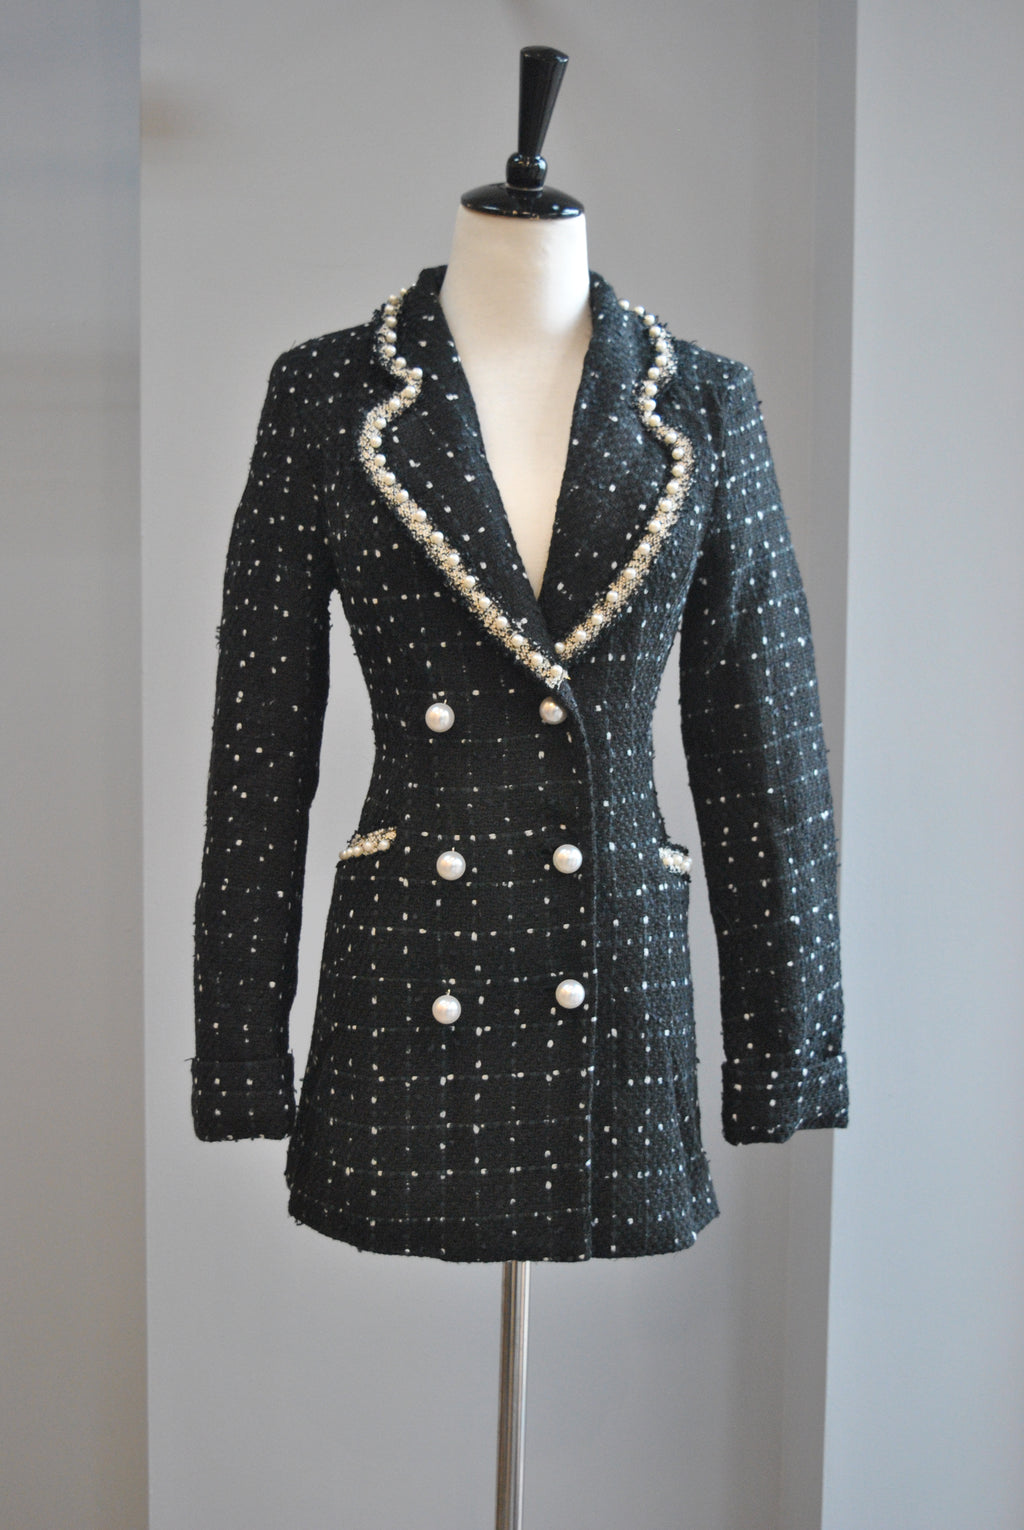 BLACK TWEED FIT JACKET WITH PEARL DETAILS